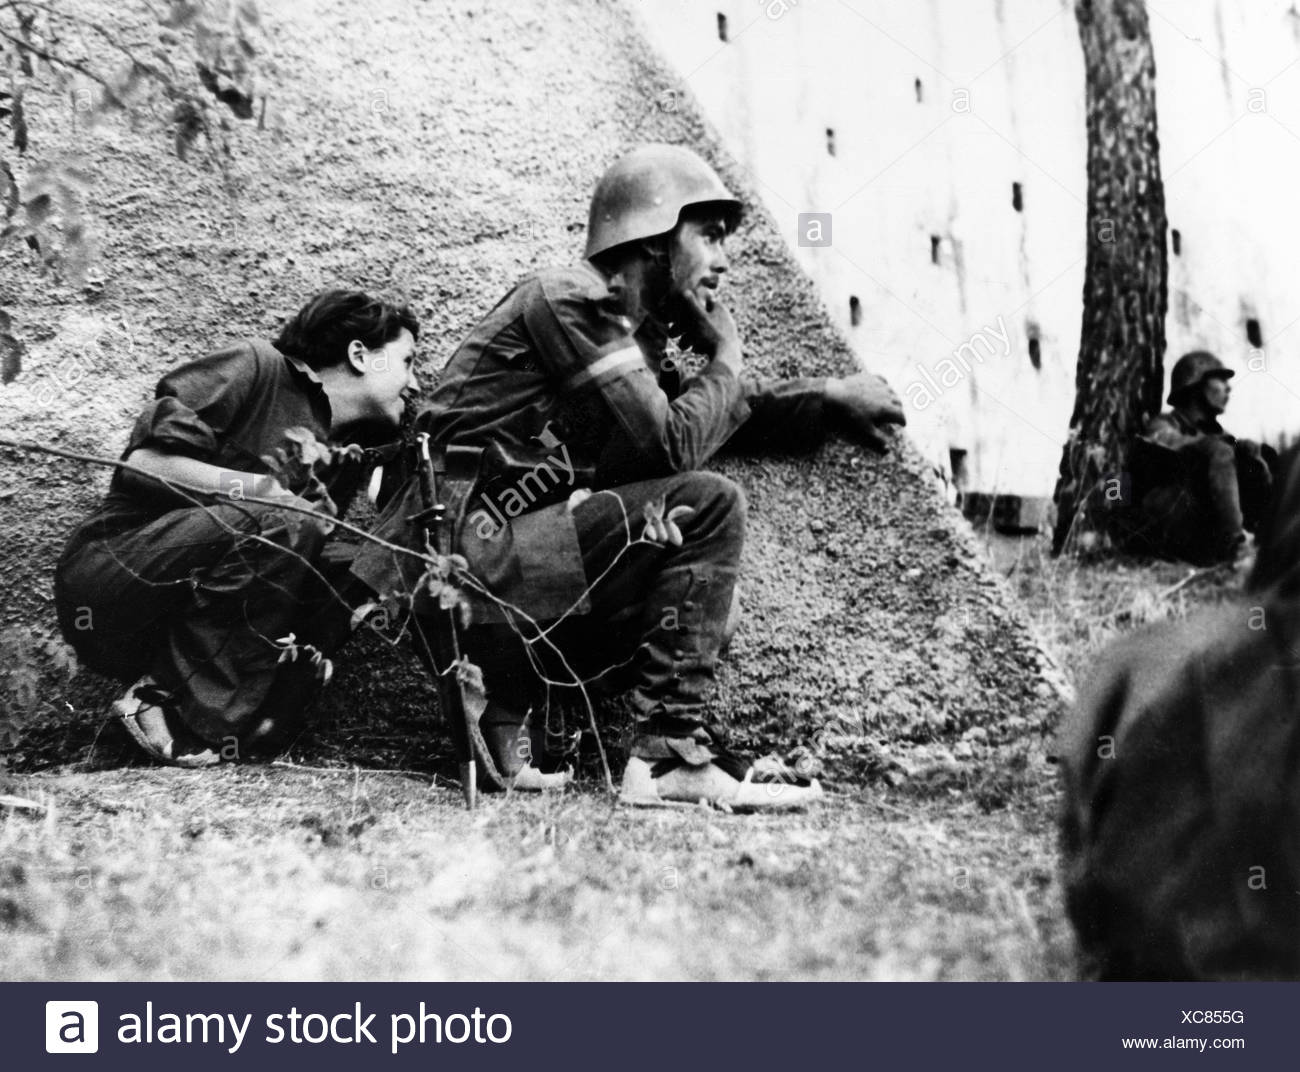 Gerta Taro photographer Spanish Civil War Spain Europe war Robert Capa army military - Stock Image